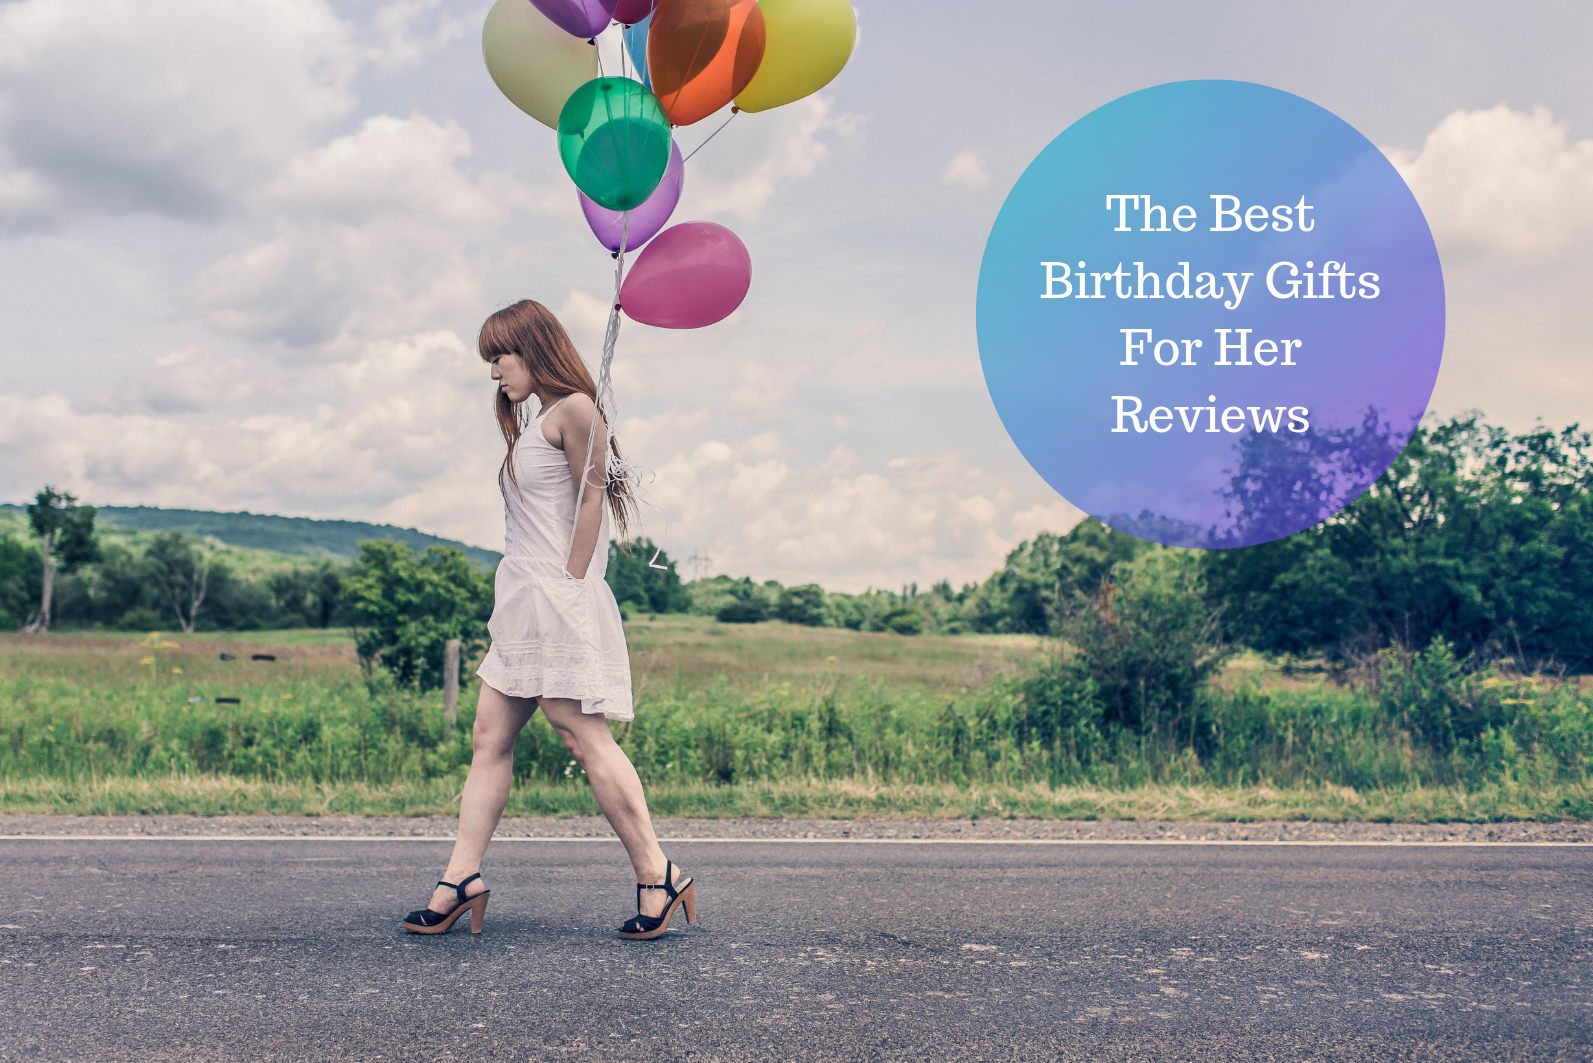 10 Best Birthday Gifts For Her Guide Reviews